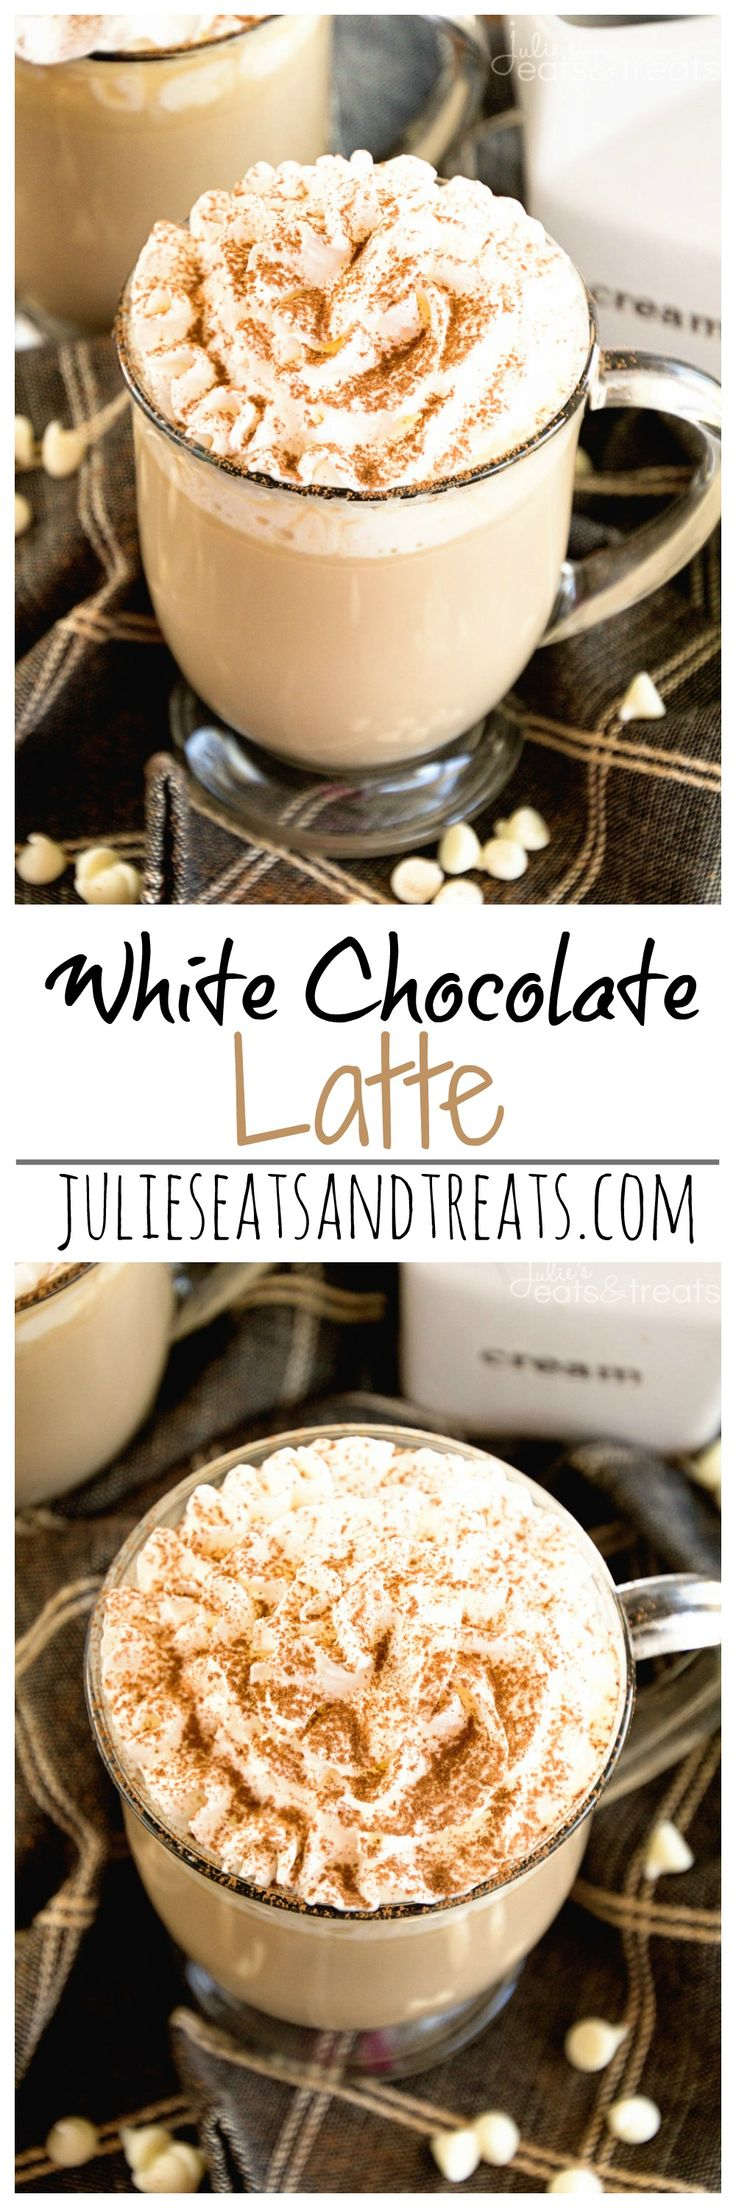 White Chocolate Latte Recipe ~ Delicious, Easy, Homemade White Chocolate Latte Recipe that Will Have You Sipping Lattes Whenever You Want! on MyRecipeMagic.com